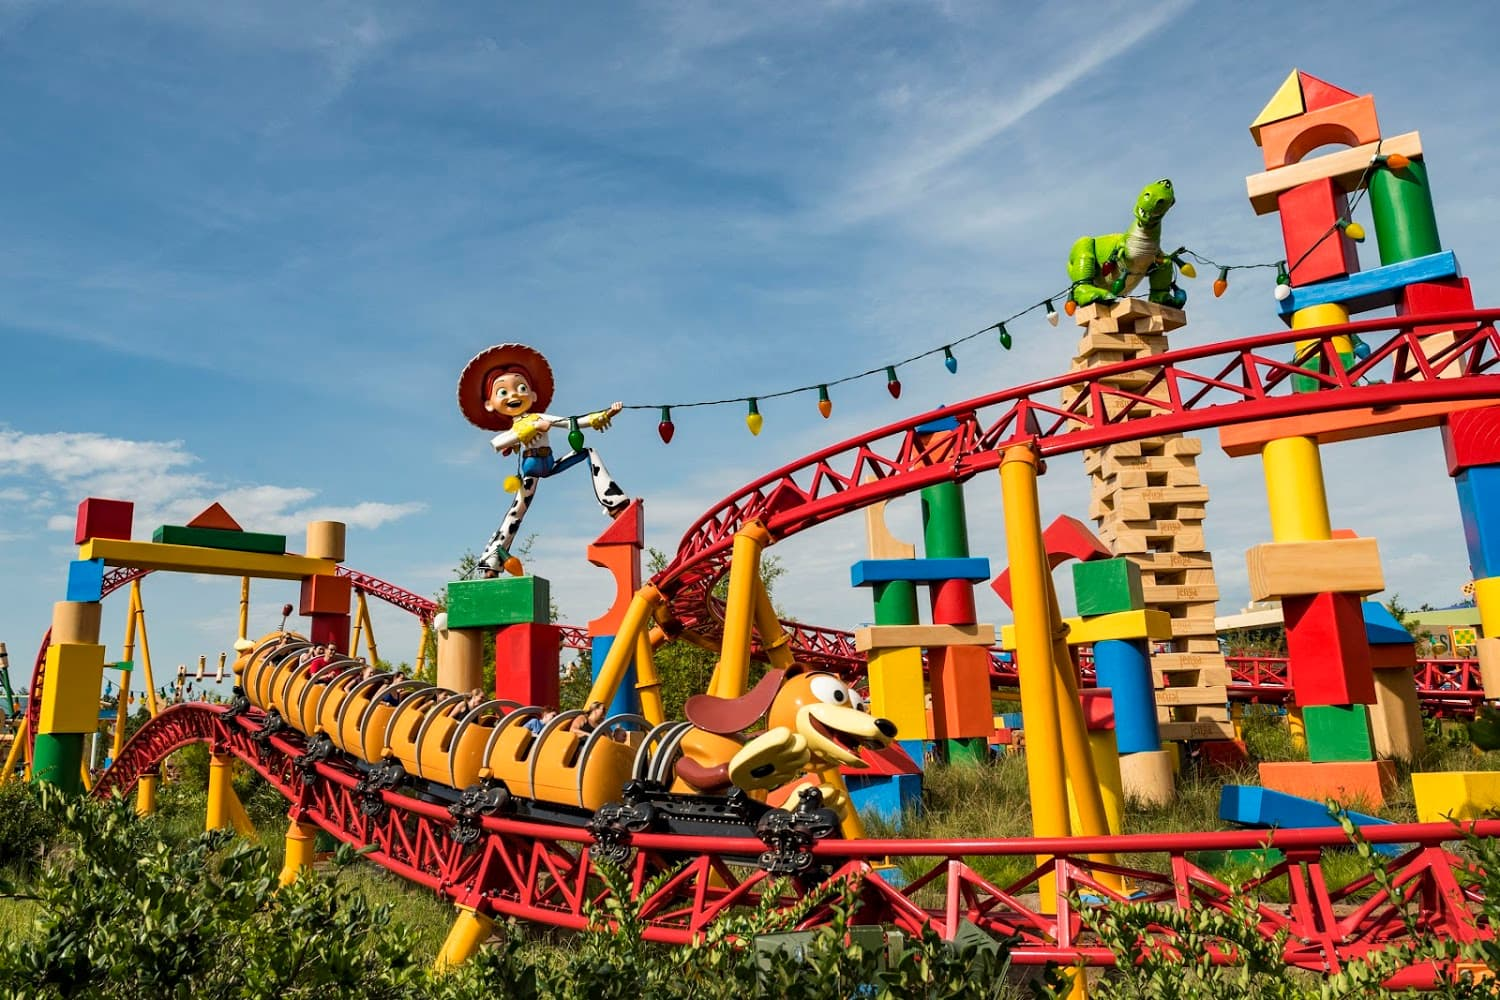 Slinky Dog Dash at Toy Story Land at Disney's Hollywood Studios with Young Children